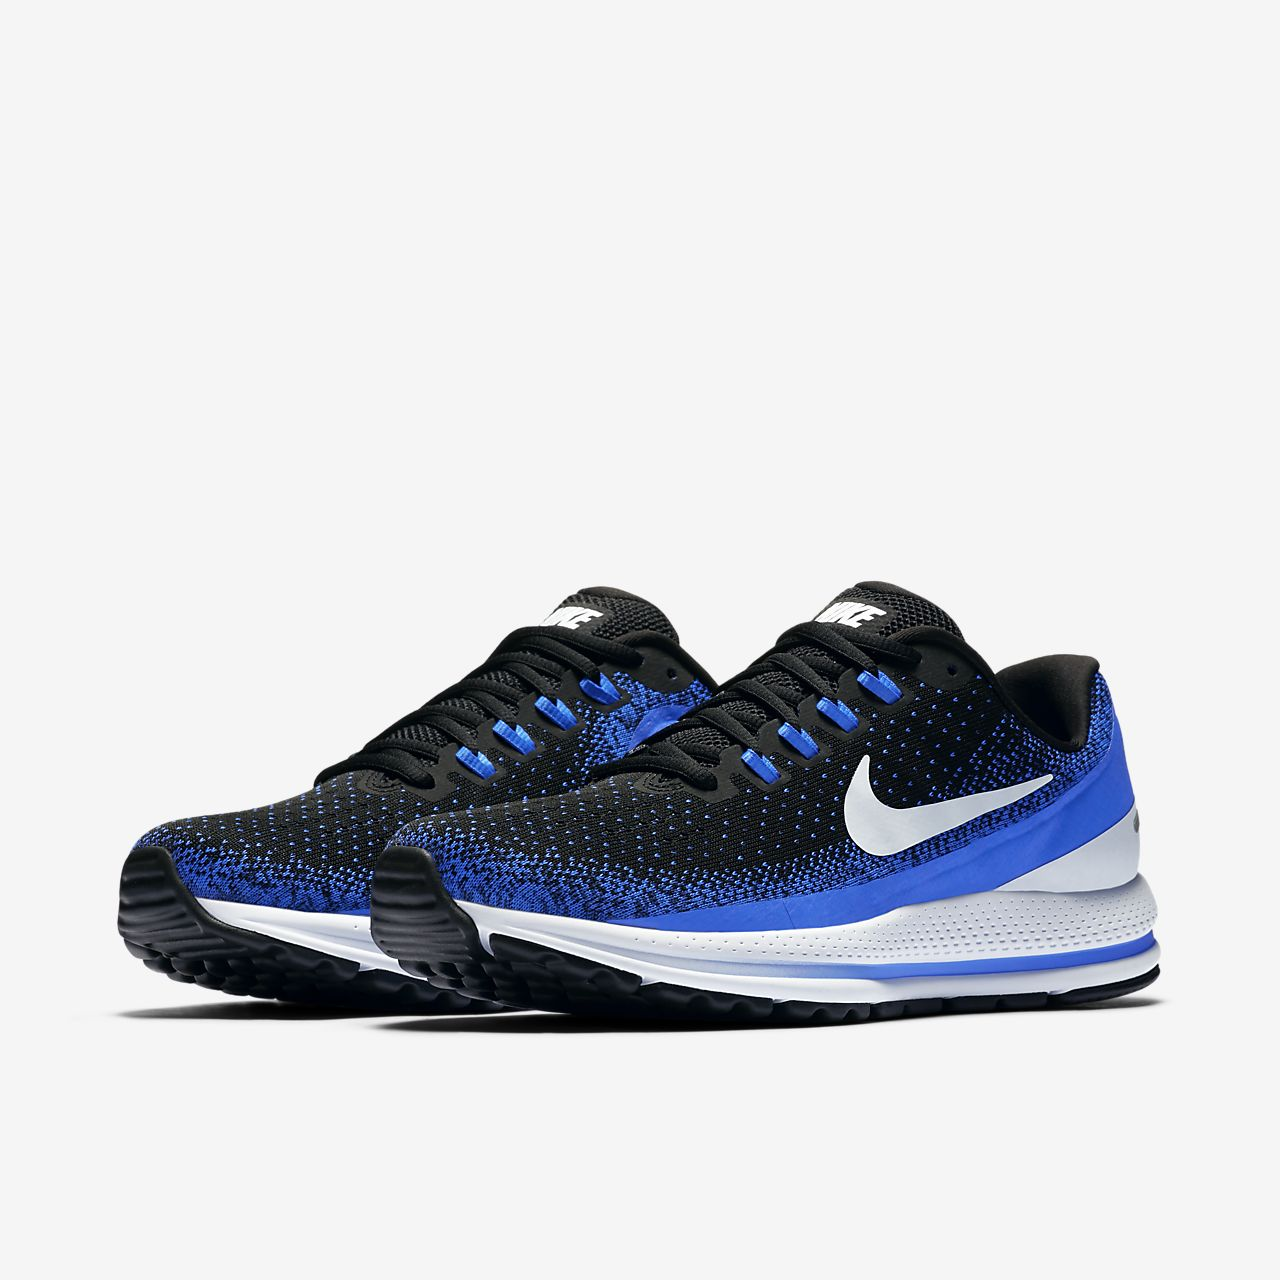 lowest price 8a581 b62b0 ... Nike Air Zoom Vomero 13 Men s Running Shoe